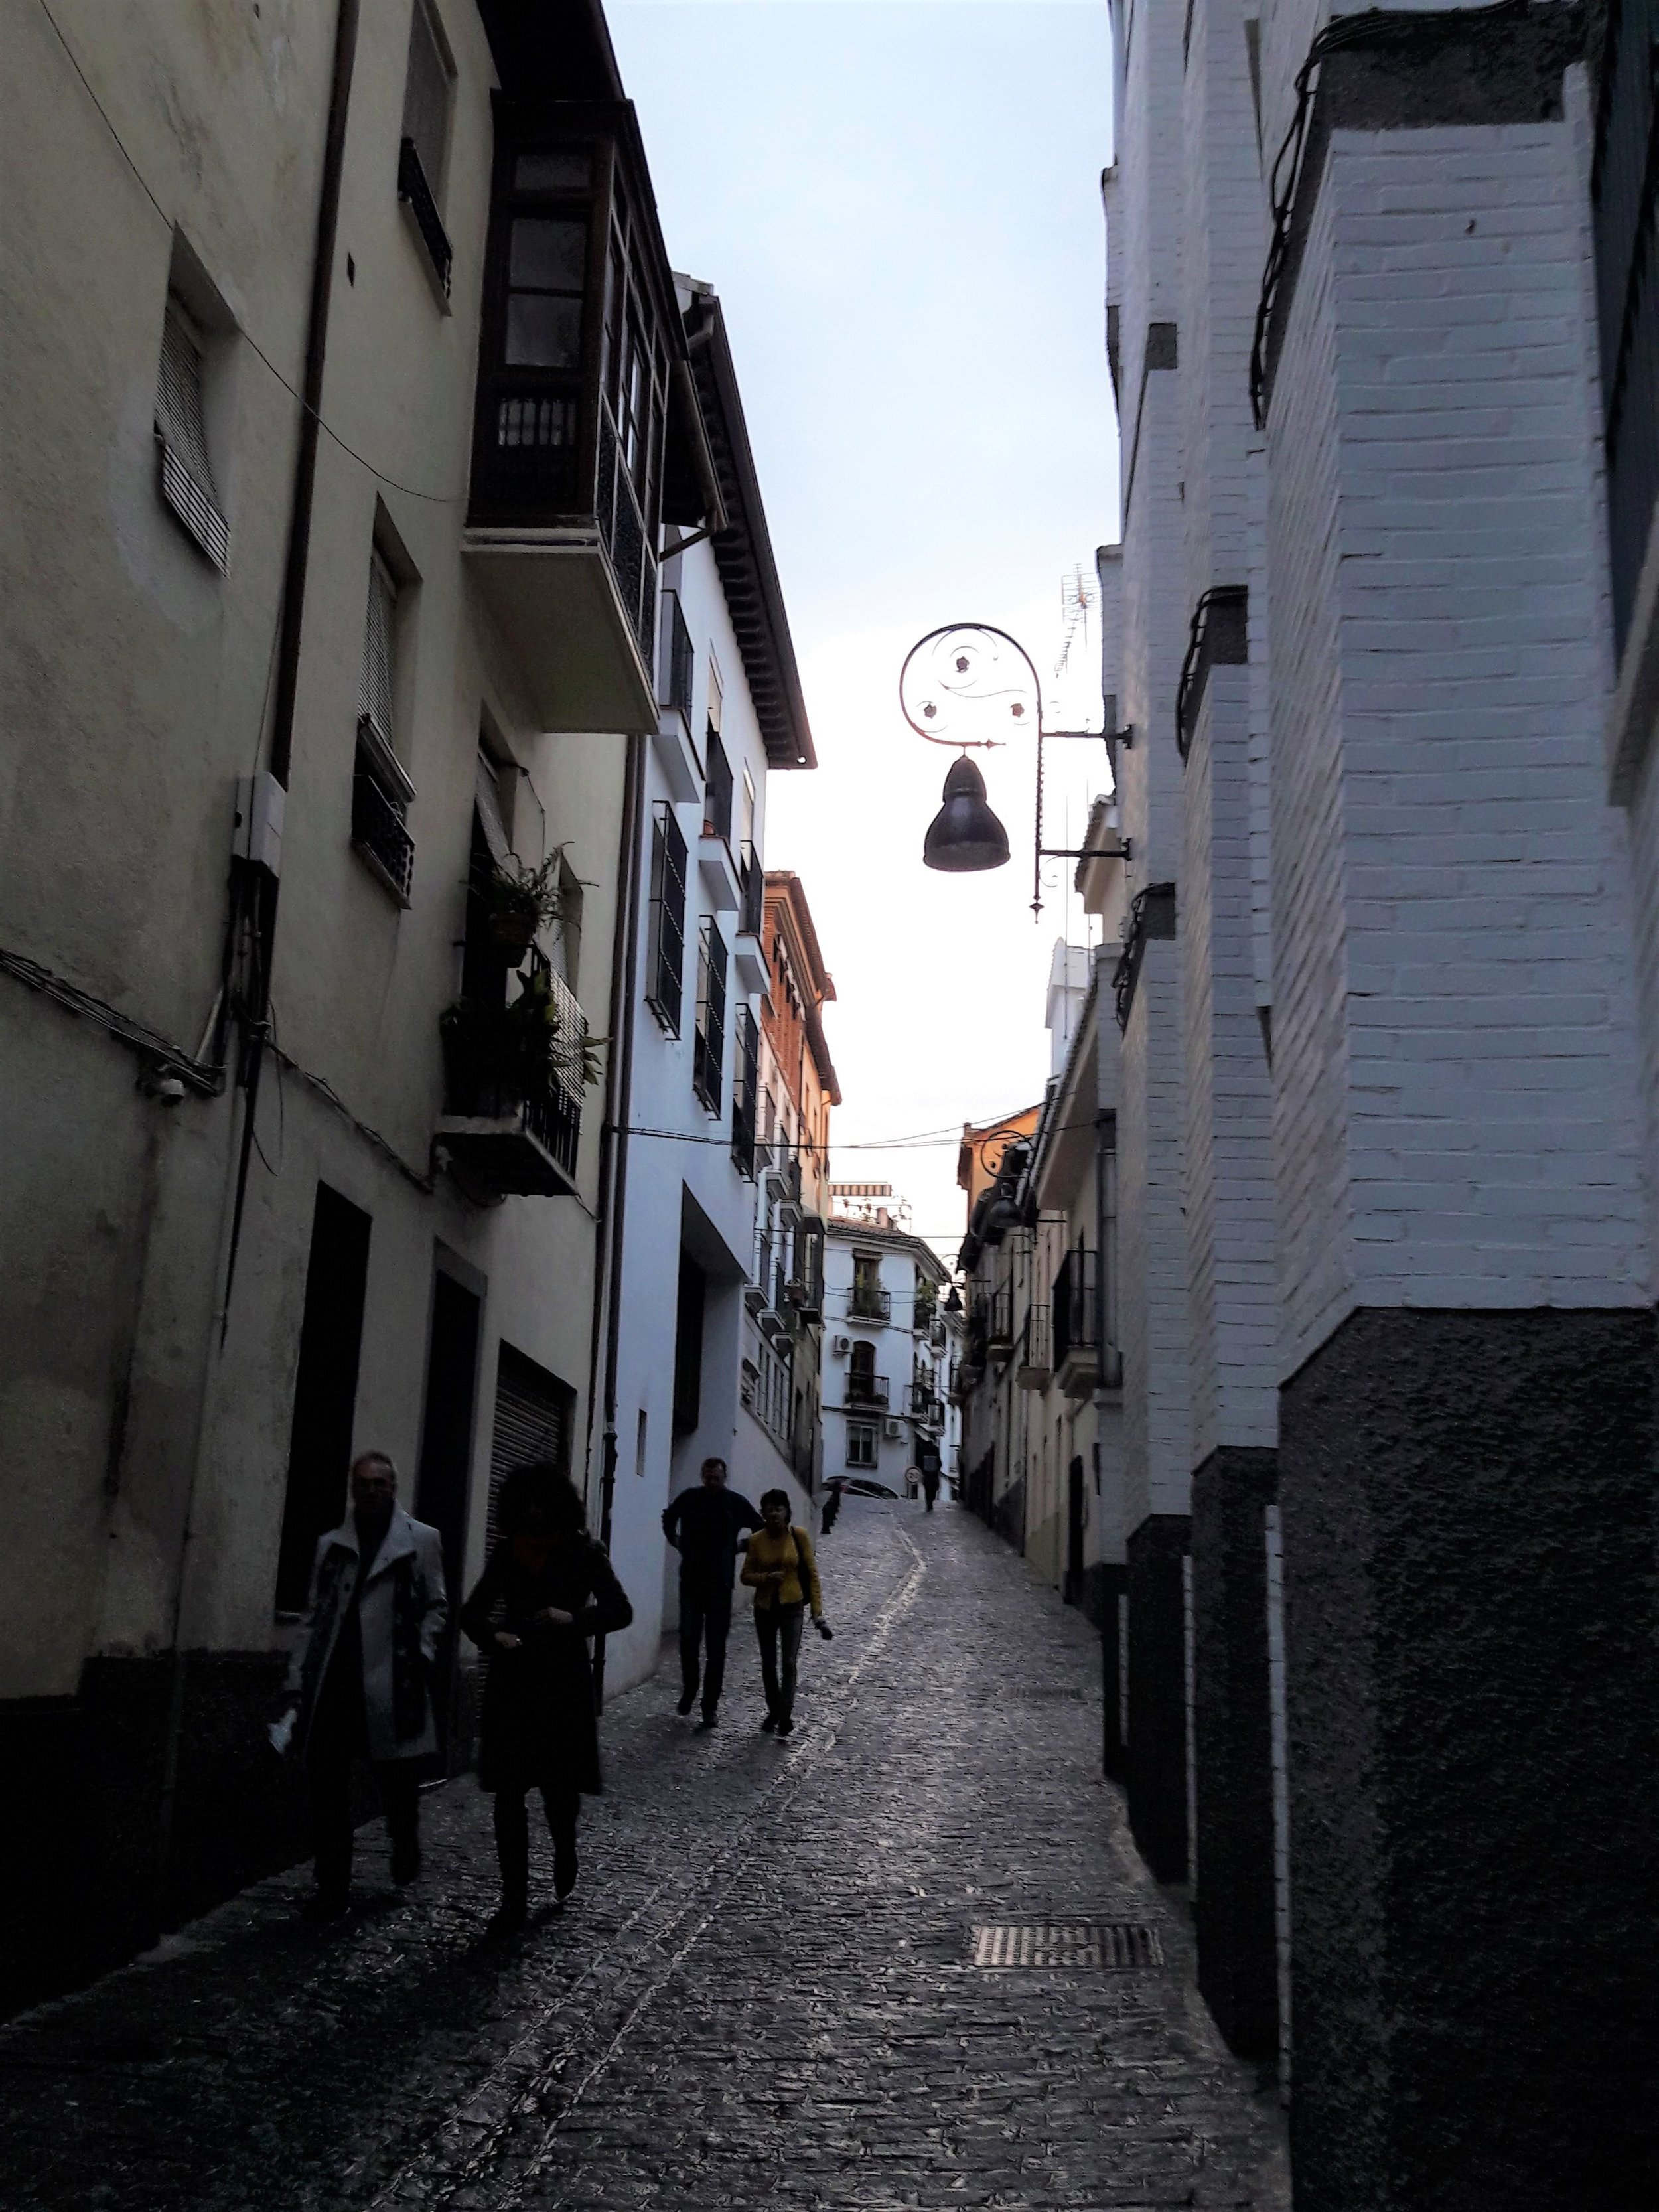 My long walks are helping me discover Granada all over again.